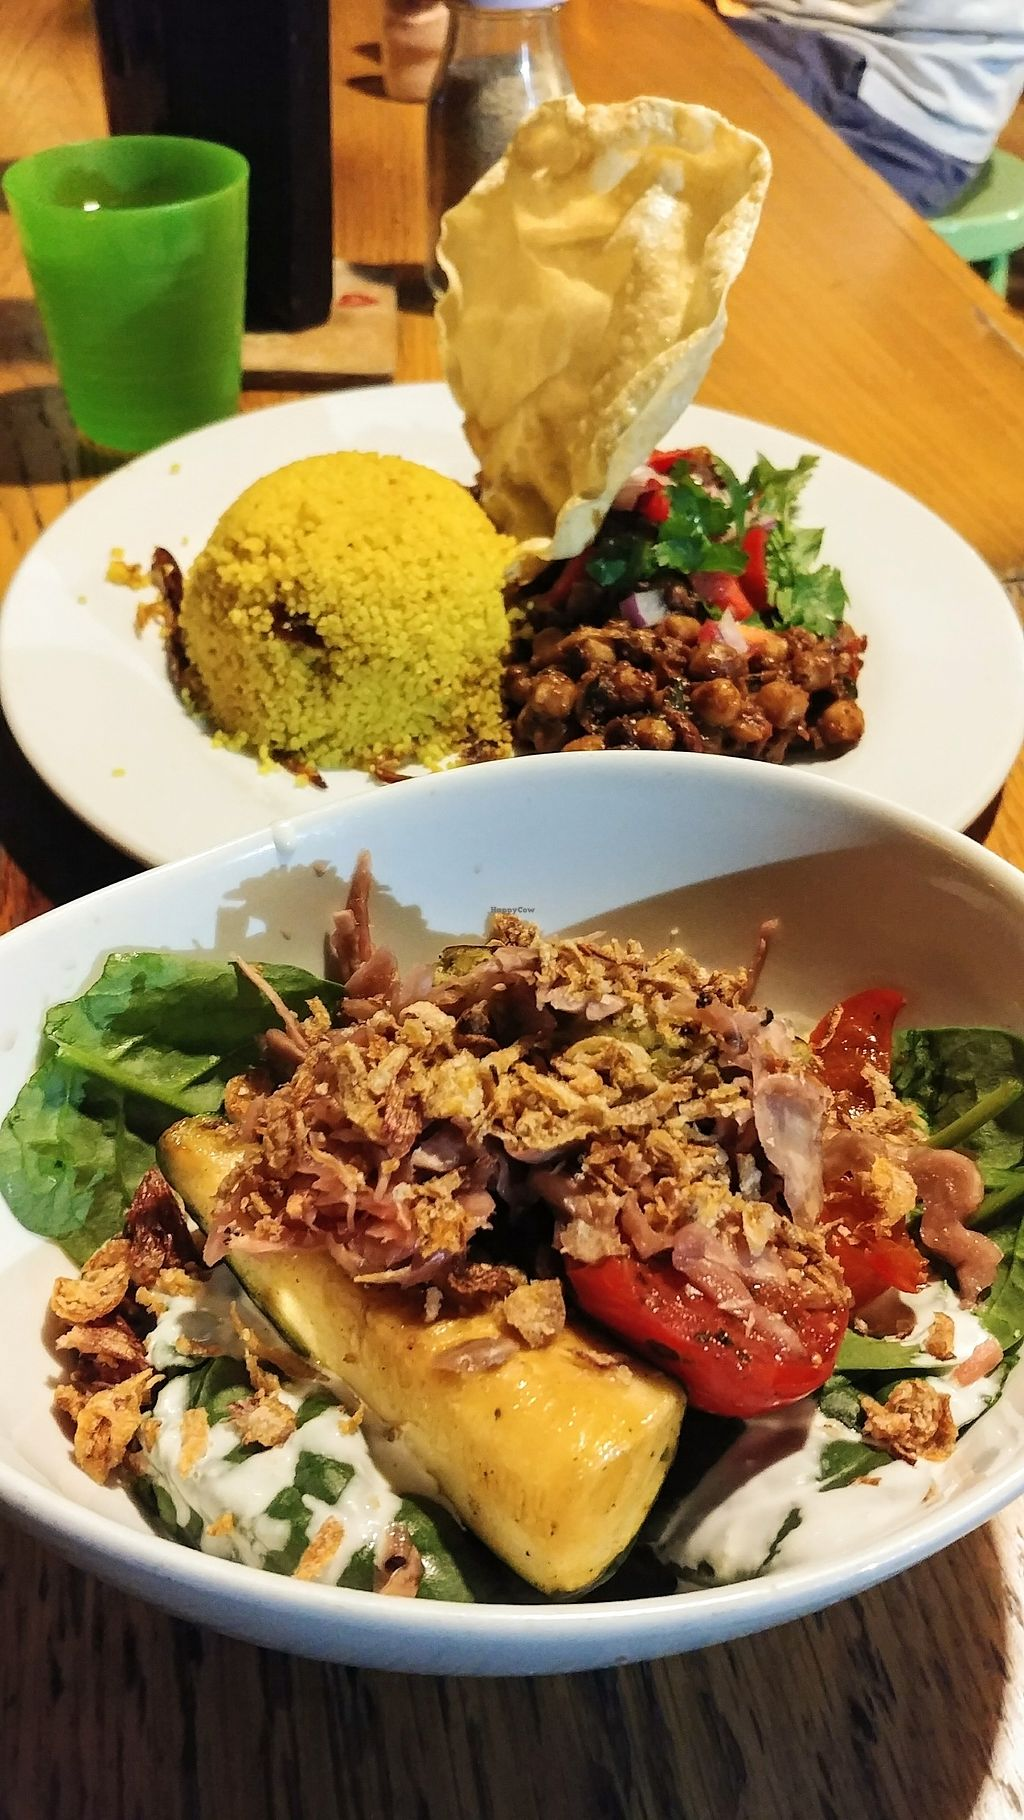 """Photo of Lentil As Anything - Abbotsford Convent  by <a href=""""/members/profile/karlaess"""">karlaess</a> <br/>Back: Moroccan Tagine Front: Buddha bowl <br/> April 3, 2018  - <a href='/contact/abuse/image/5313/380150'>Report</a>"""